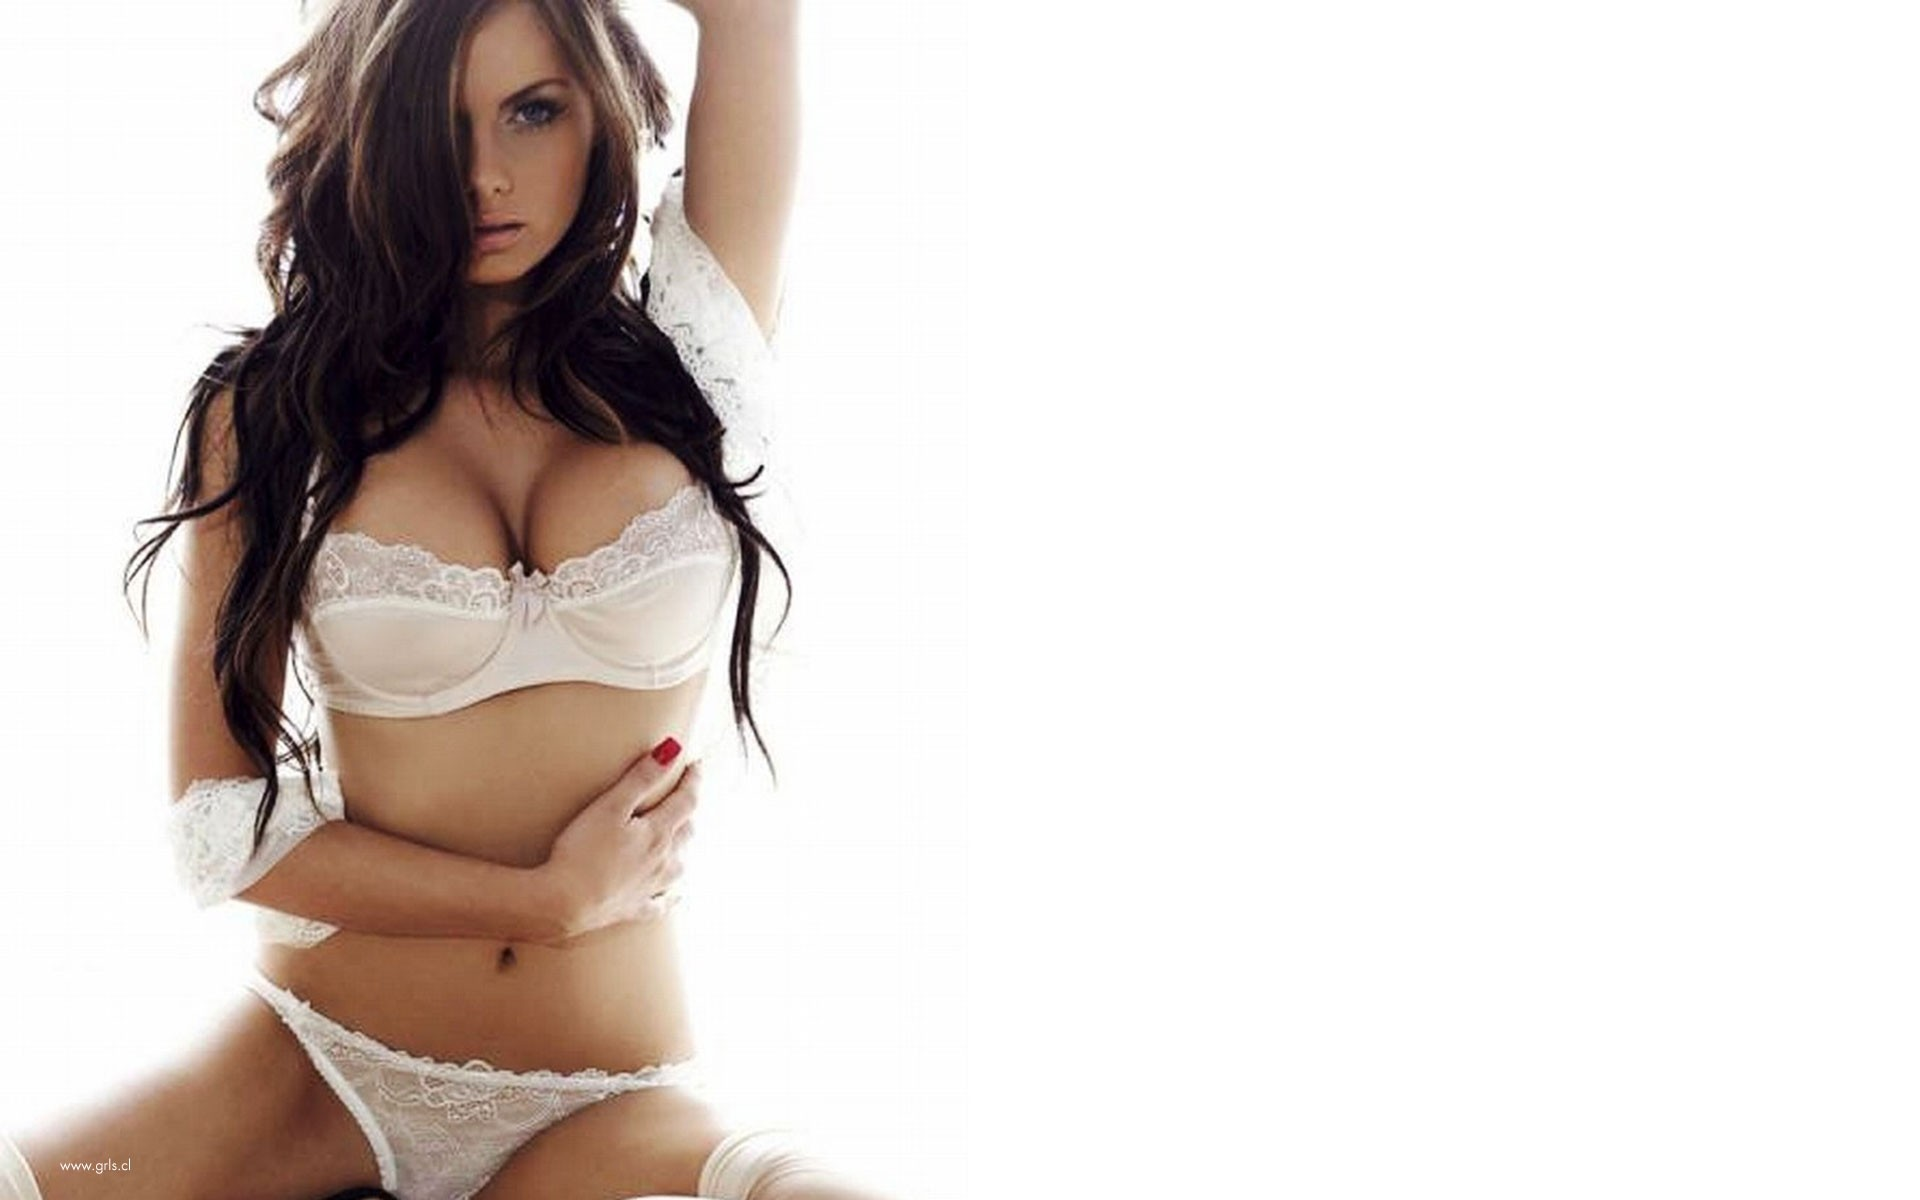 woman cleavage Jessica Jane HD Wallpaper